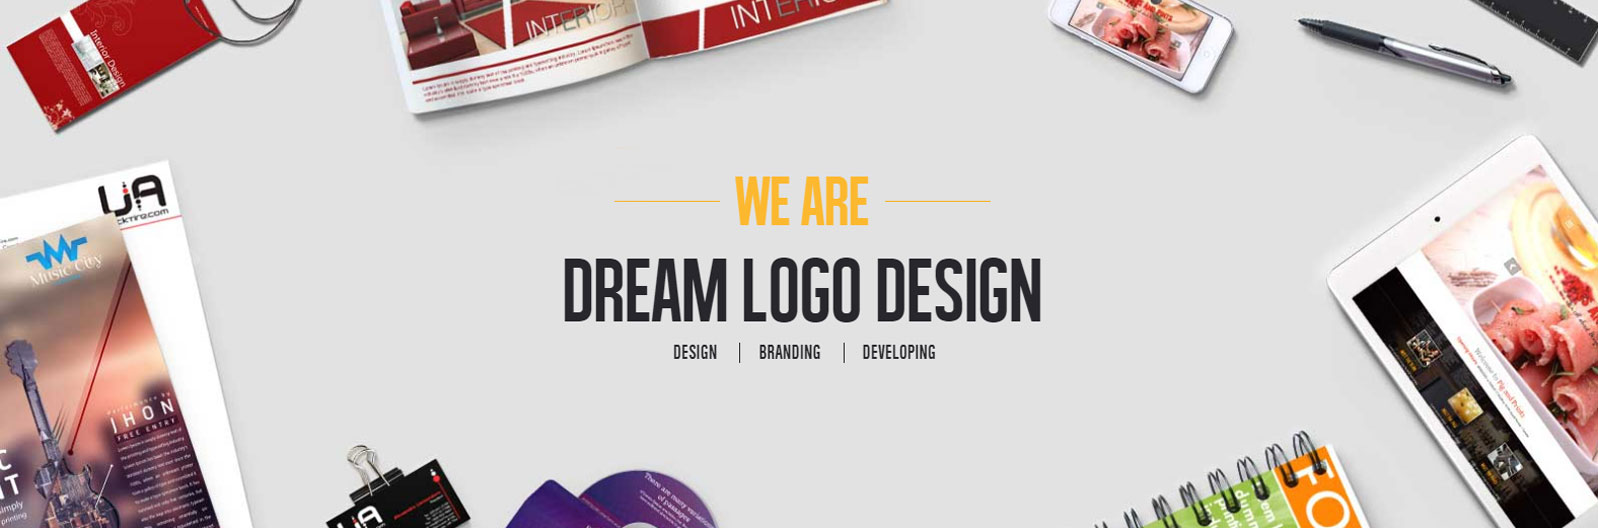 Cleaning Logo Design Portfolio 29